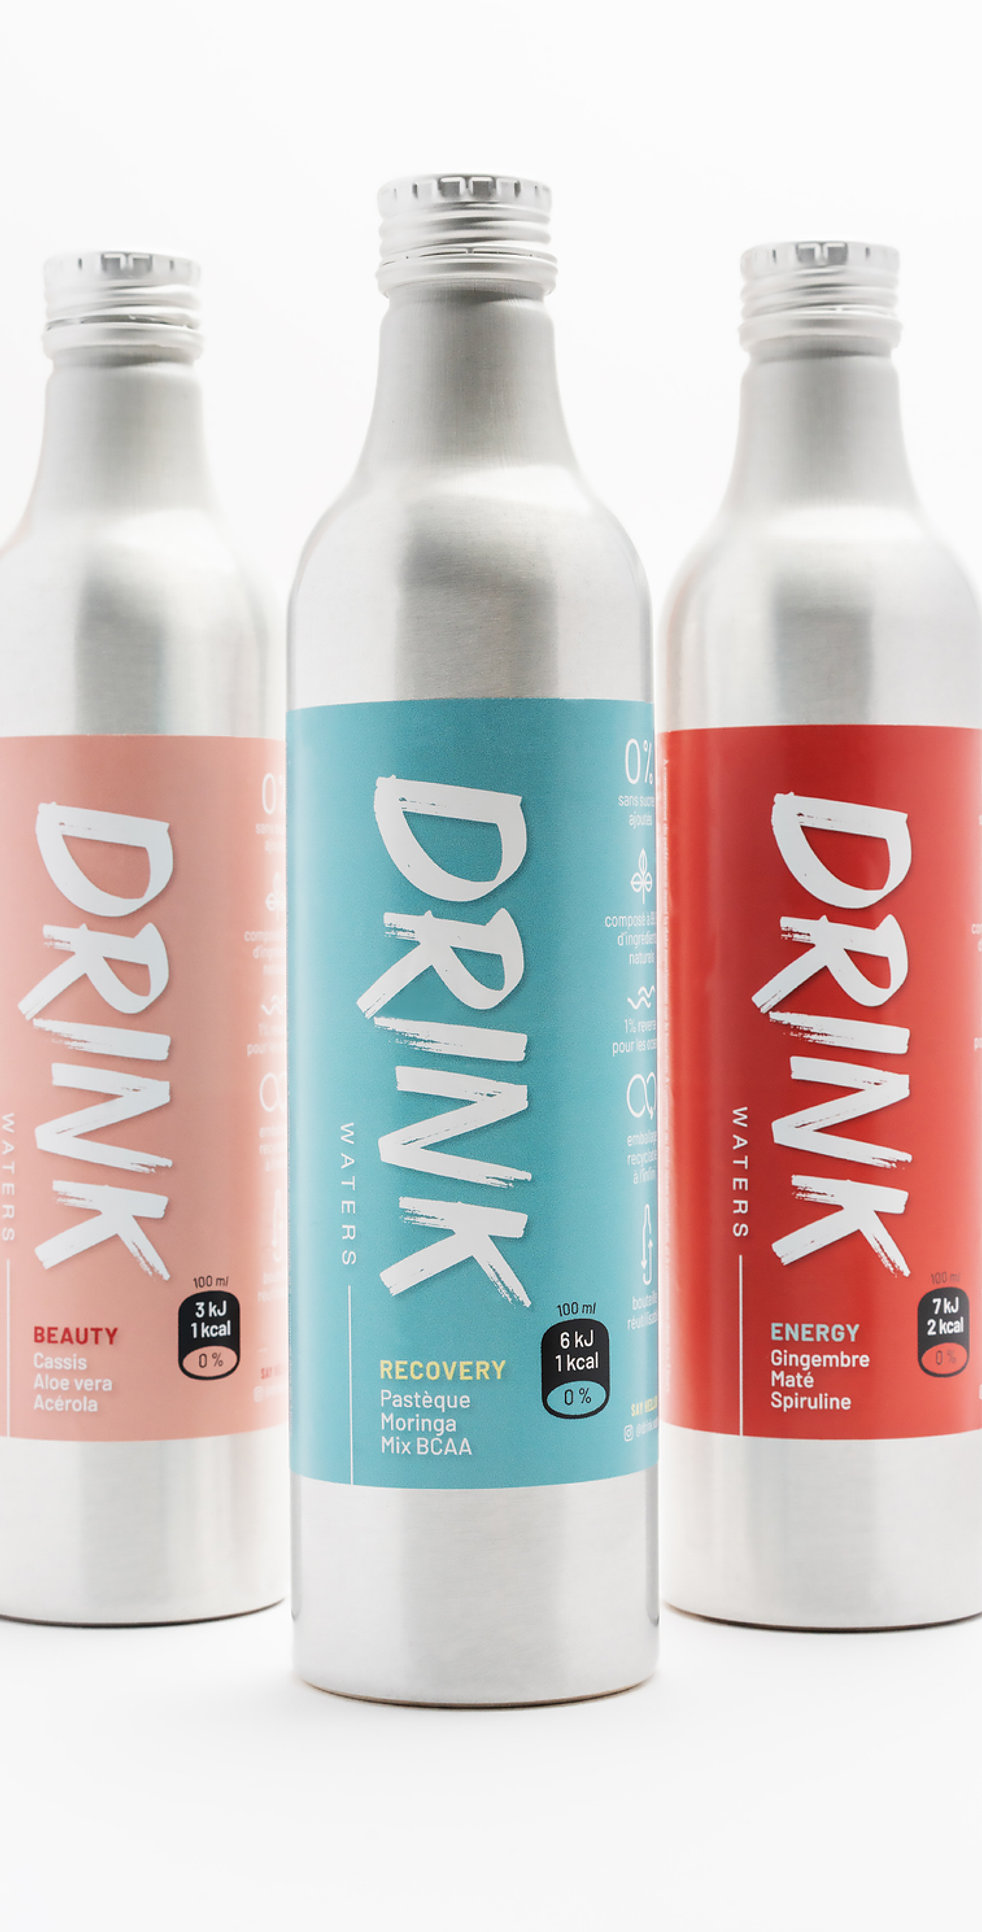 01901e 6b3e1bdb9c4c43549f66bf90bf589e82mv2 - Drink Waters étend sa gamme